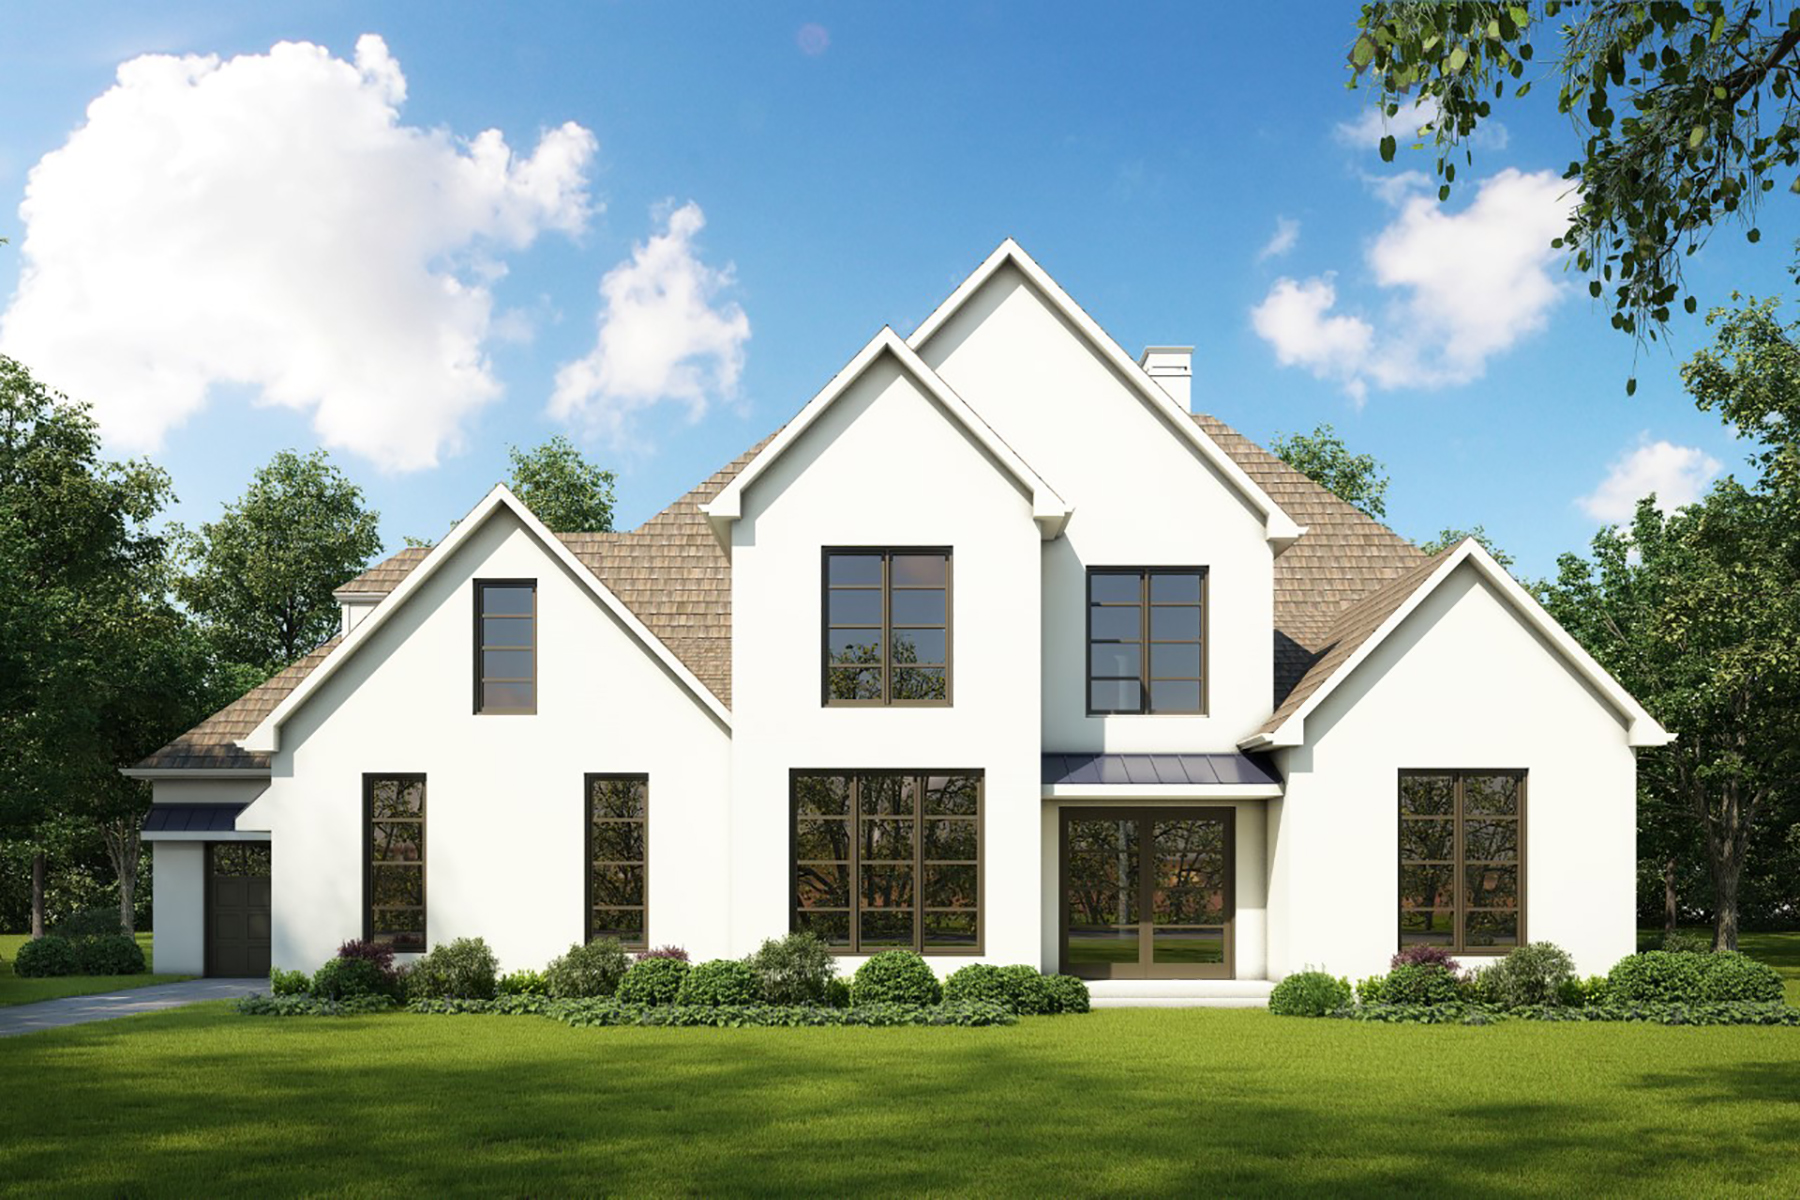 Single Family Homes for Sale at Modern Estate To Be Built in Downtown Alpharetta Garden District 12480 Hopewell Road Alpharetta, Georgia 30009 United States